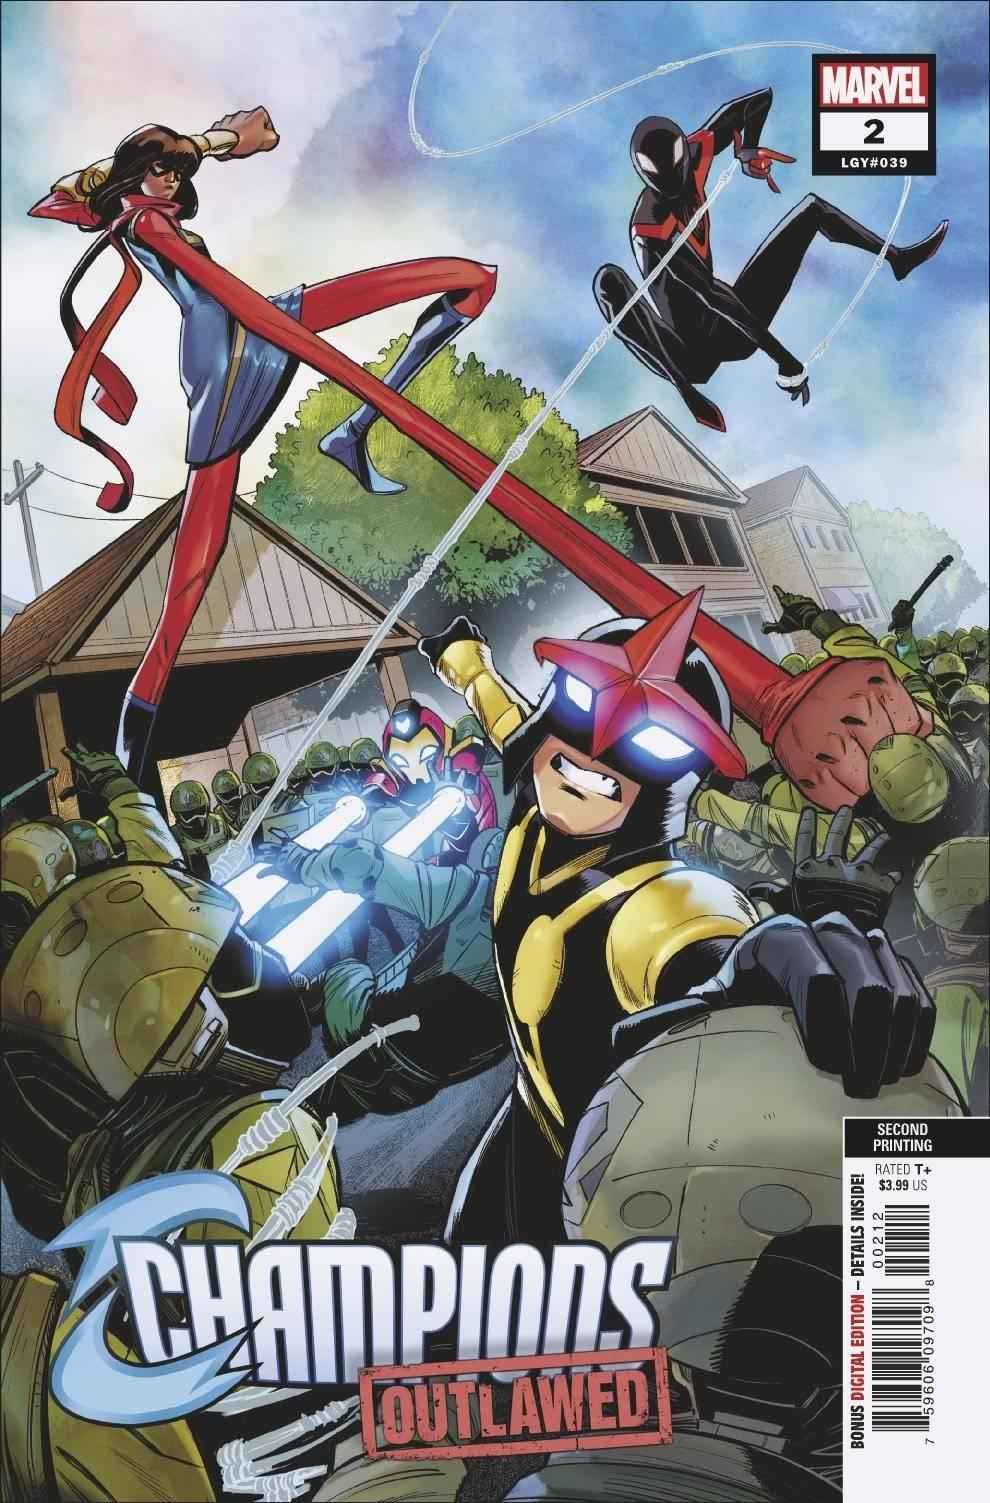 STL178673 ComicList: Marvel Comics New Releases for 12/30/2020